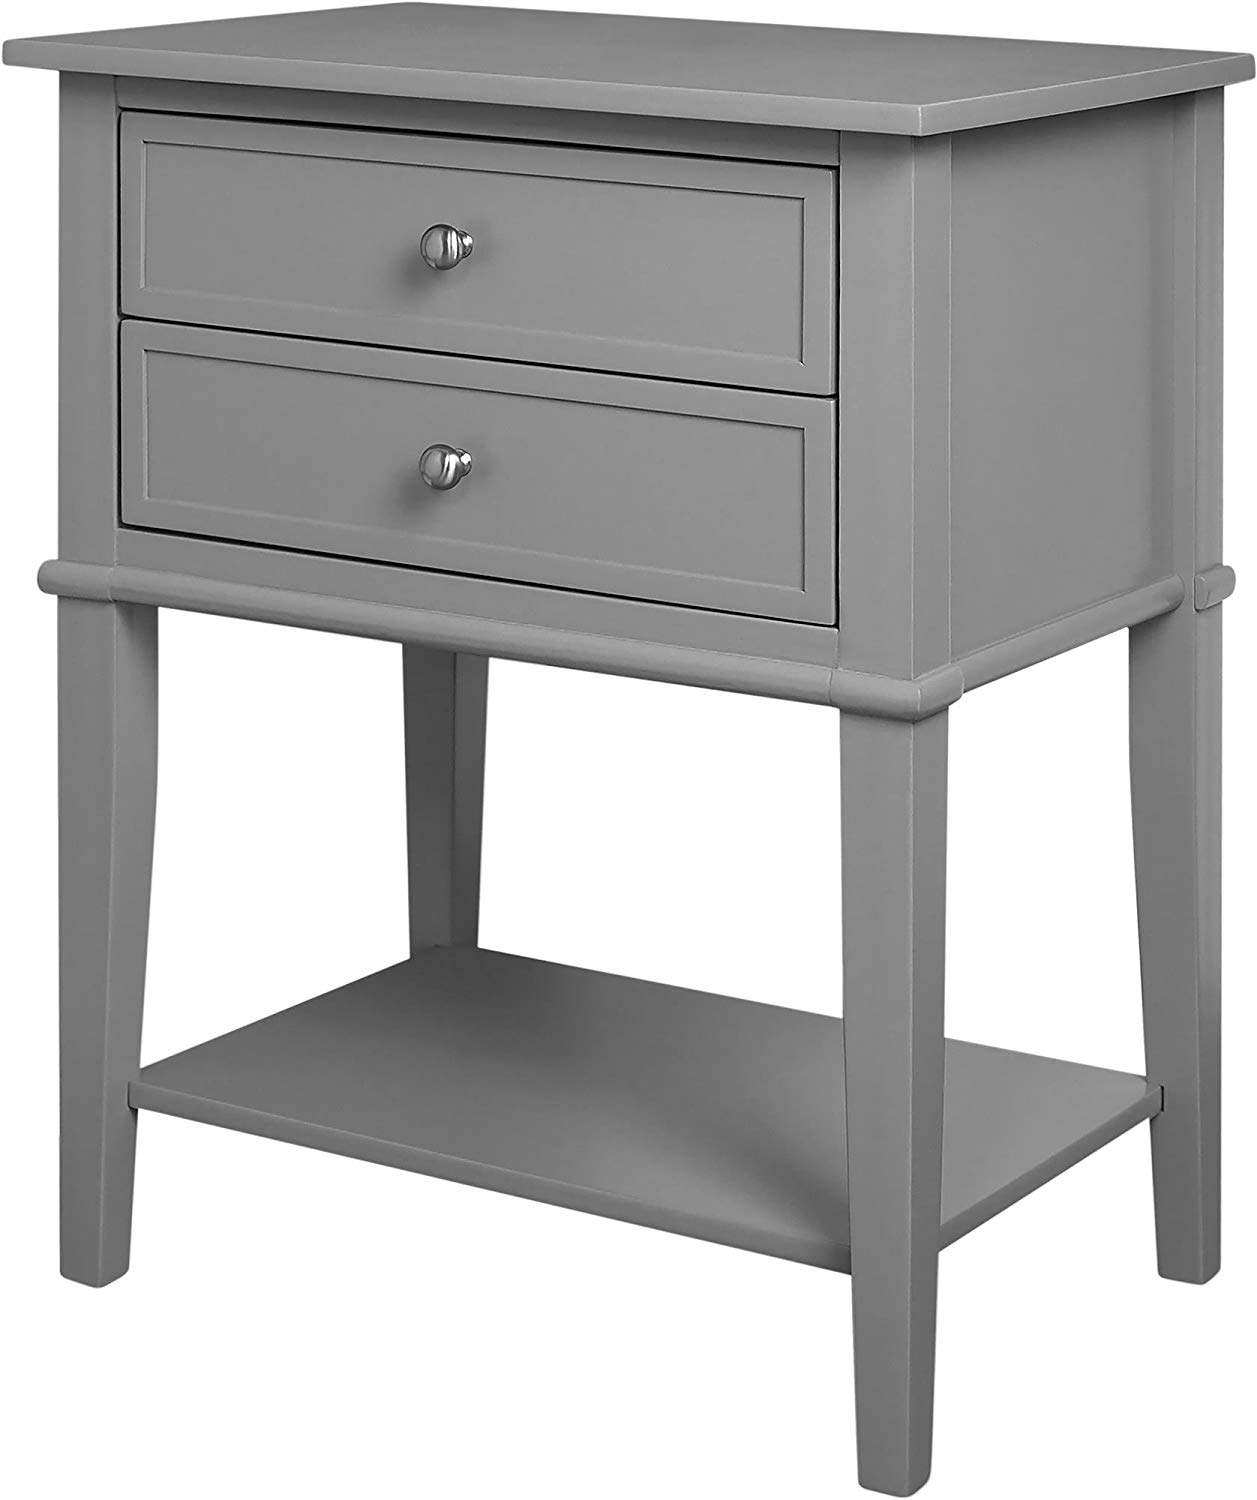 ameriwood home franklin accent table with drawers fjnahl end gray kitchen dining mission side plans lawn and garden futon mattress topper bedroom lamps set stanley wood furniture